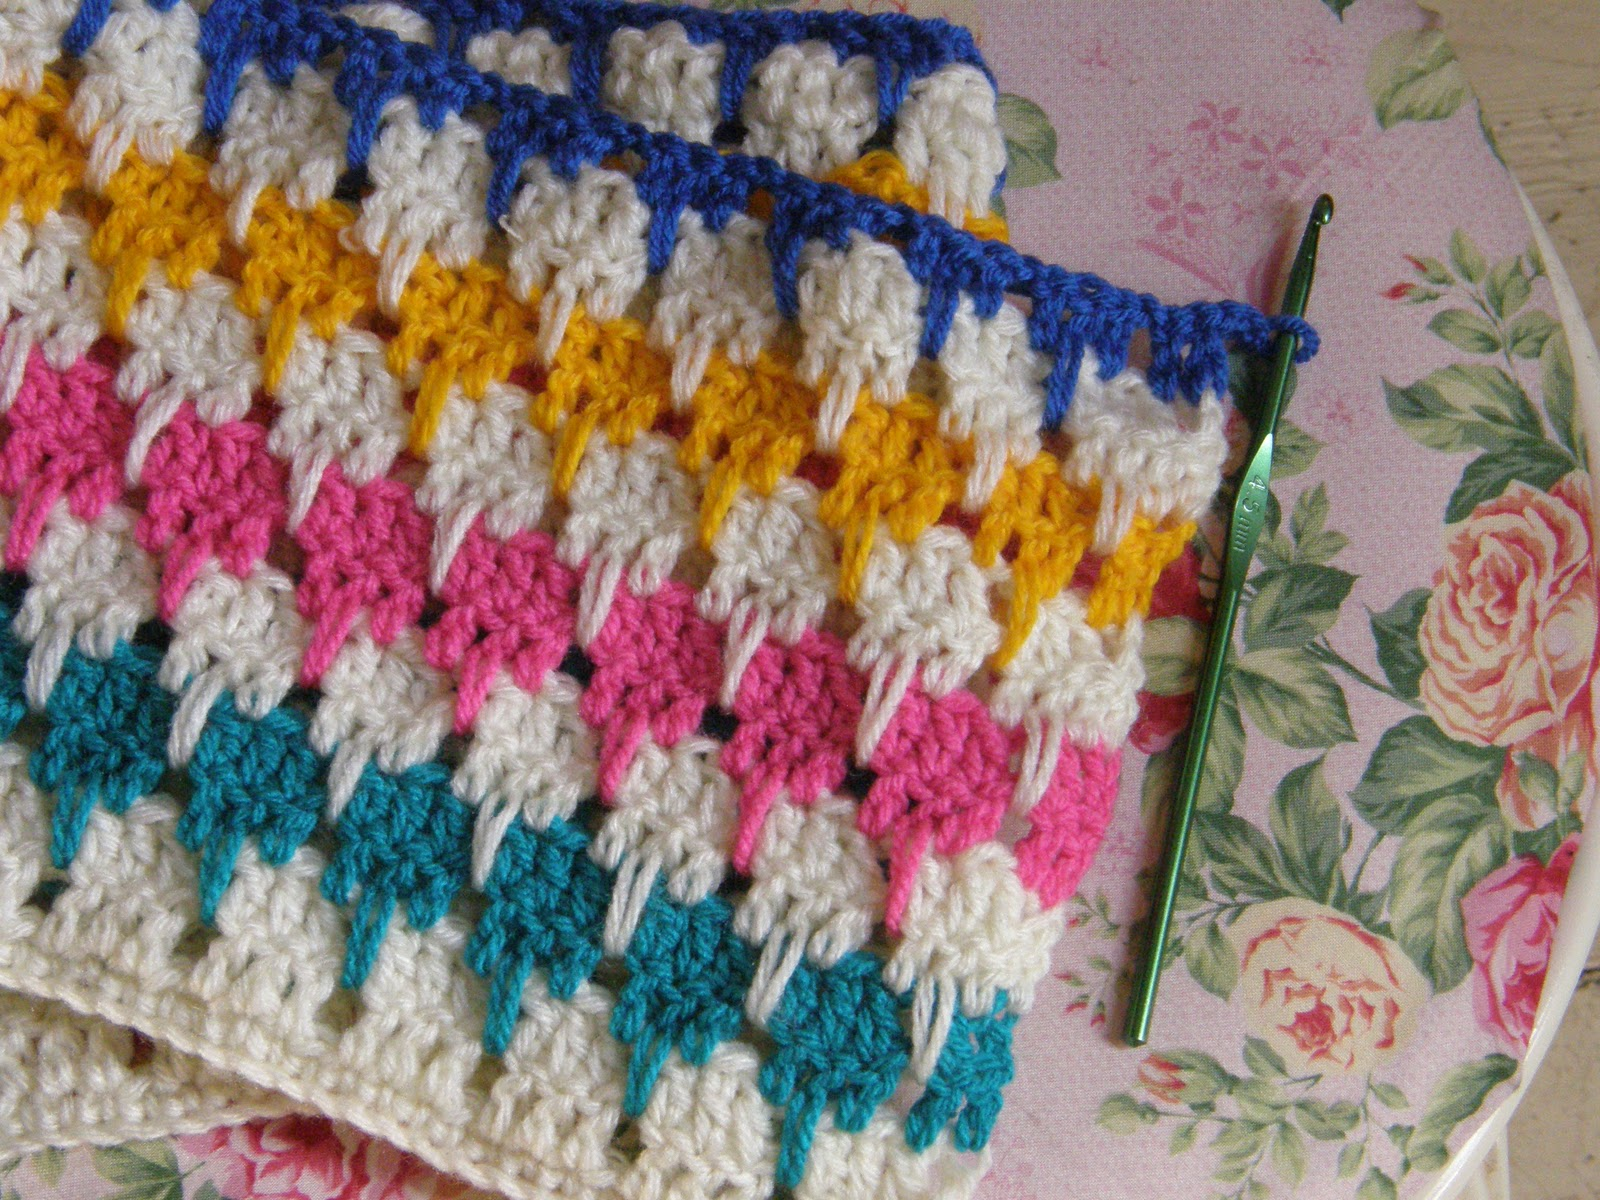 How To Crochet A Larksfoot Blanket Or An Arcade Blanket